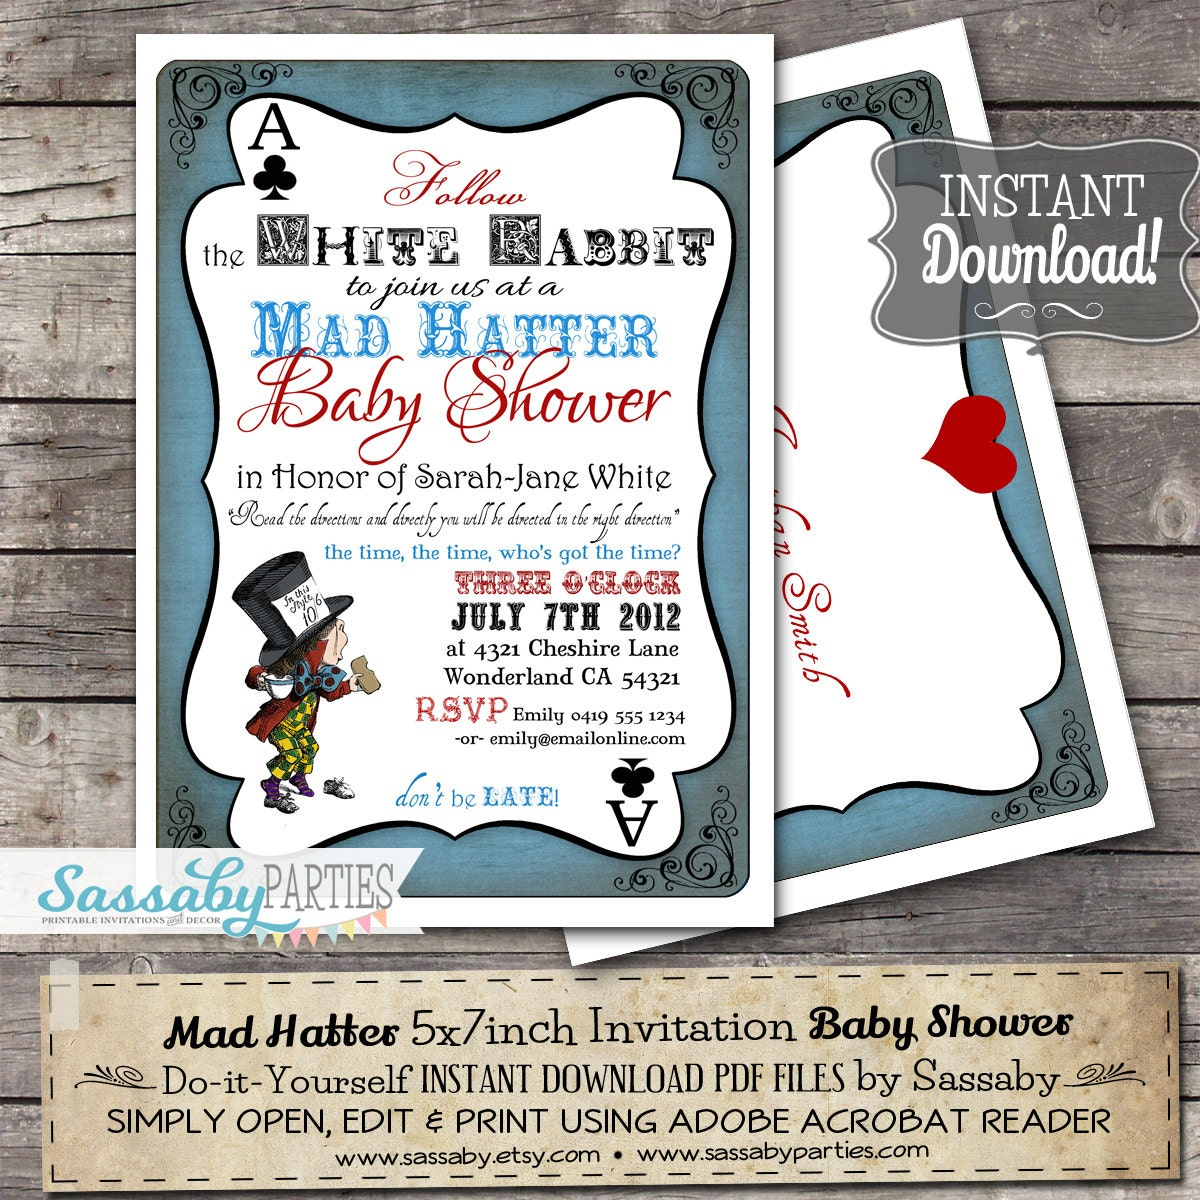 Mad Hatter Baby Shower Invitation INSTANT DOWNLOAD